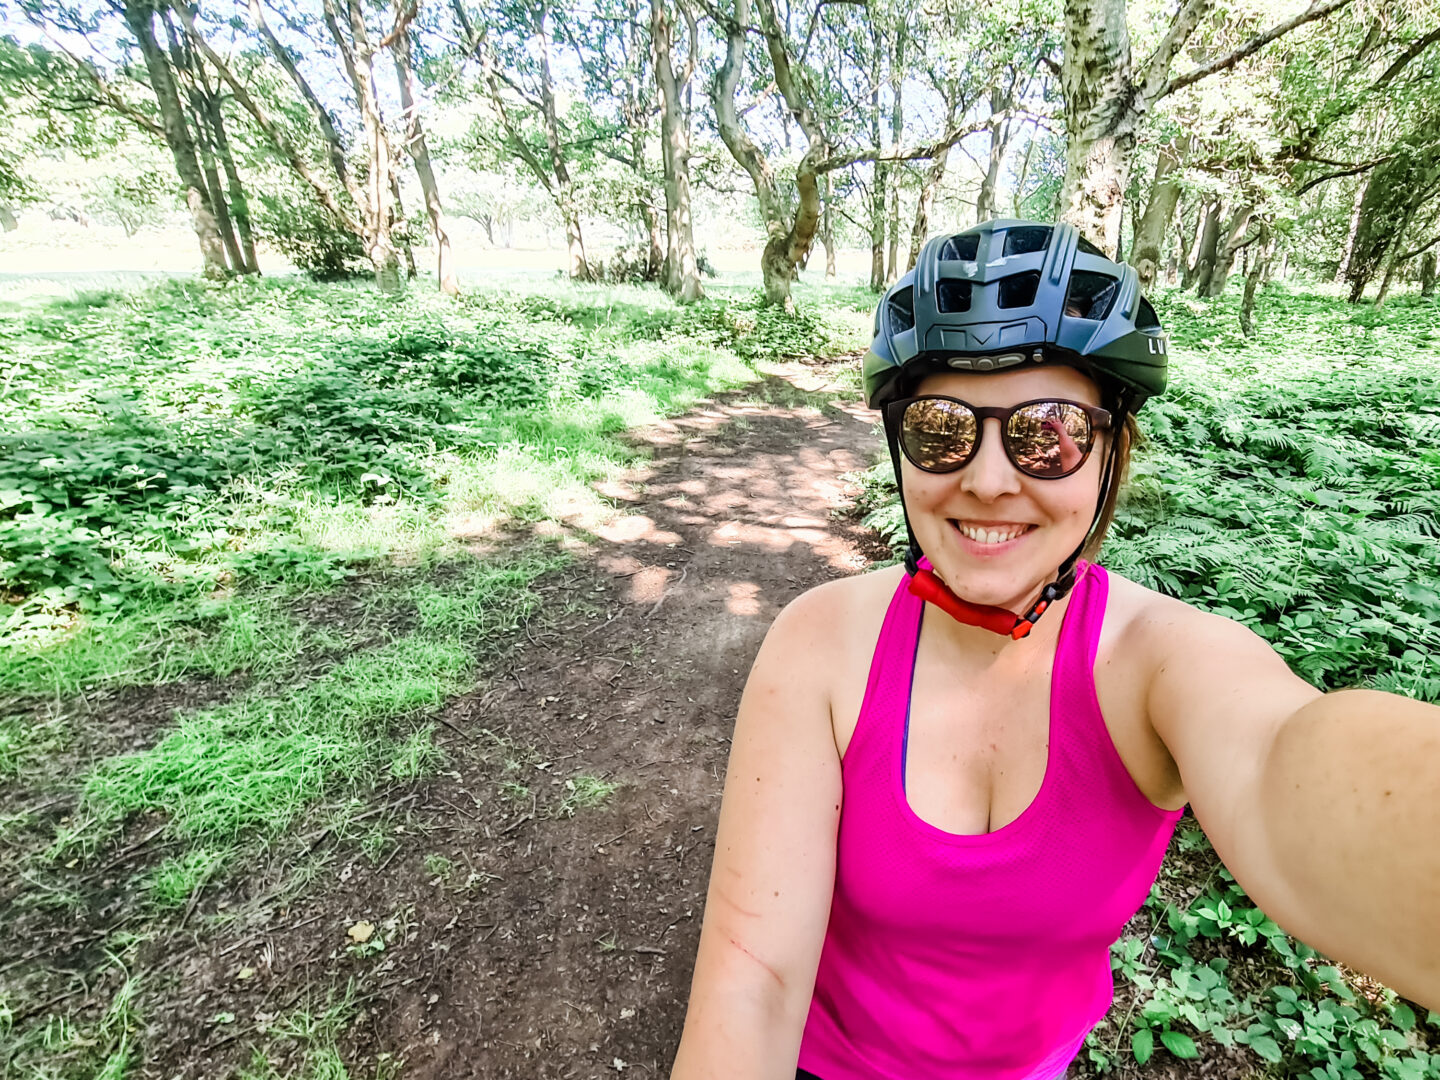 A woman in cycling kit smiles at the camera with a wood behind her, a muddy trail disappearing into the distance.